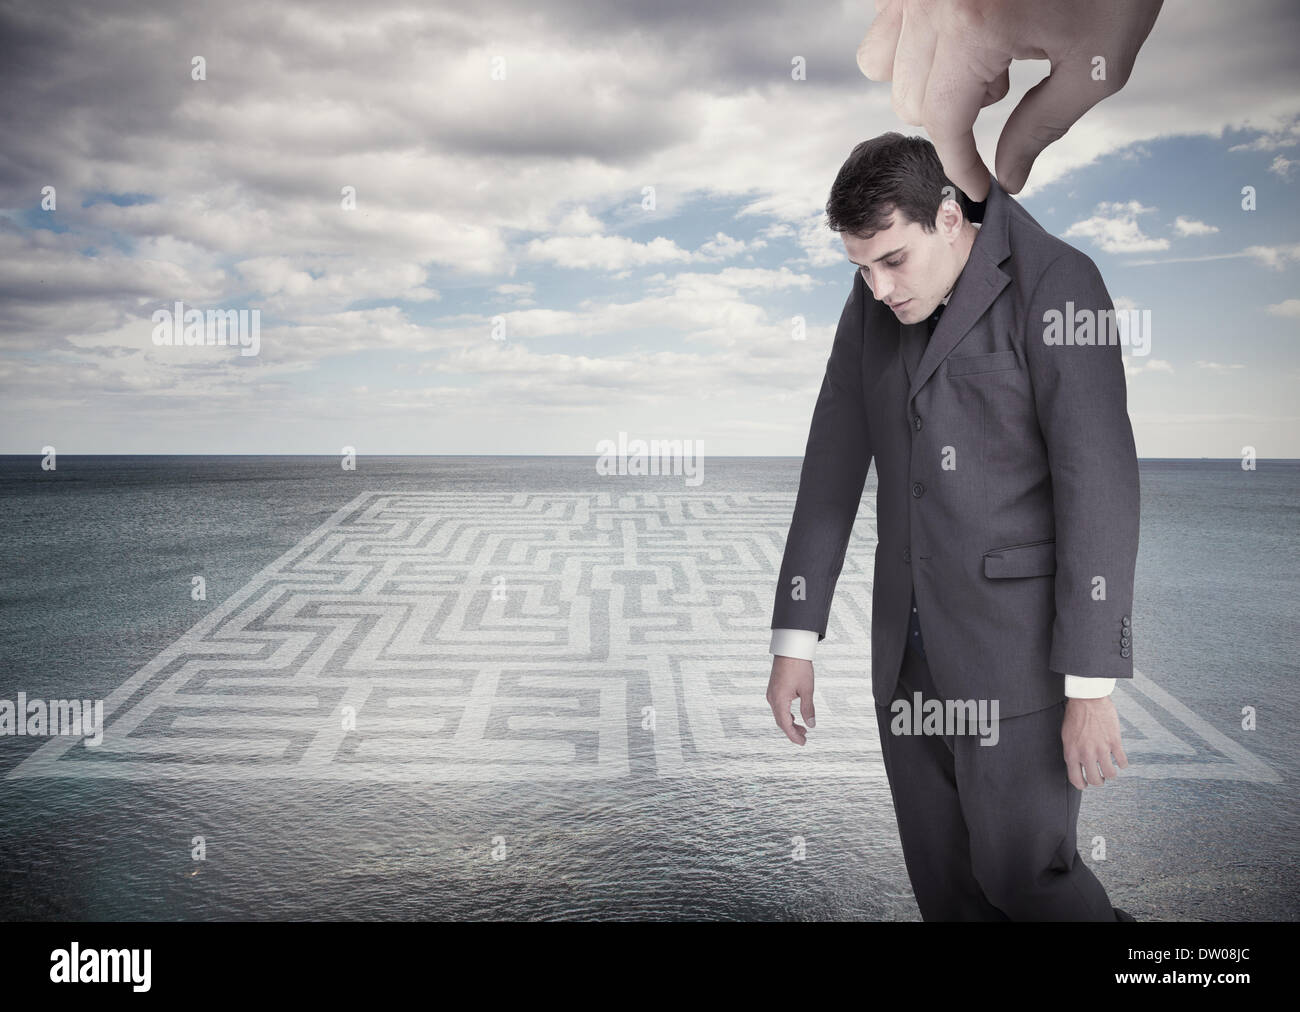 Giant hand dropping off a businessman - Stock Image